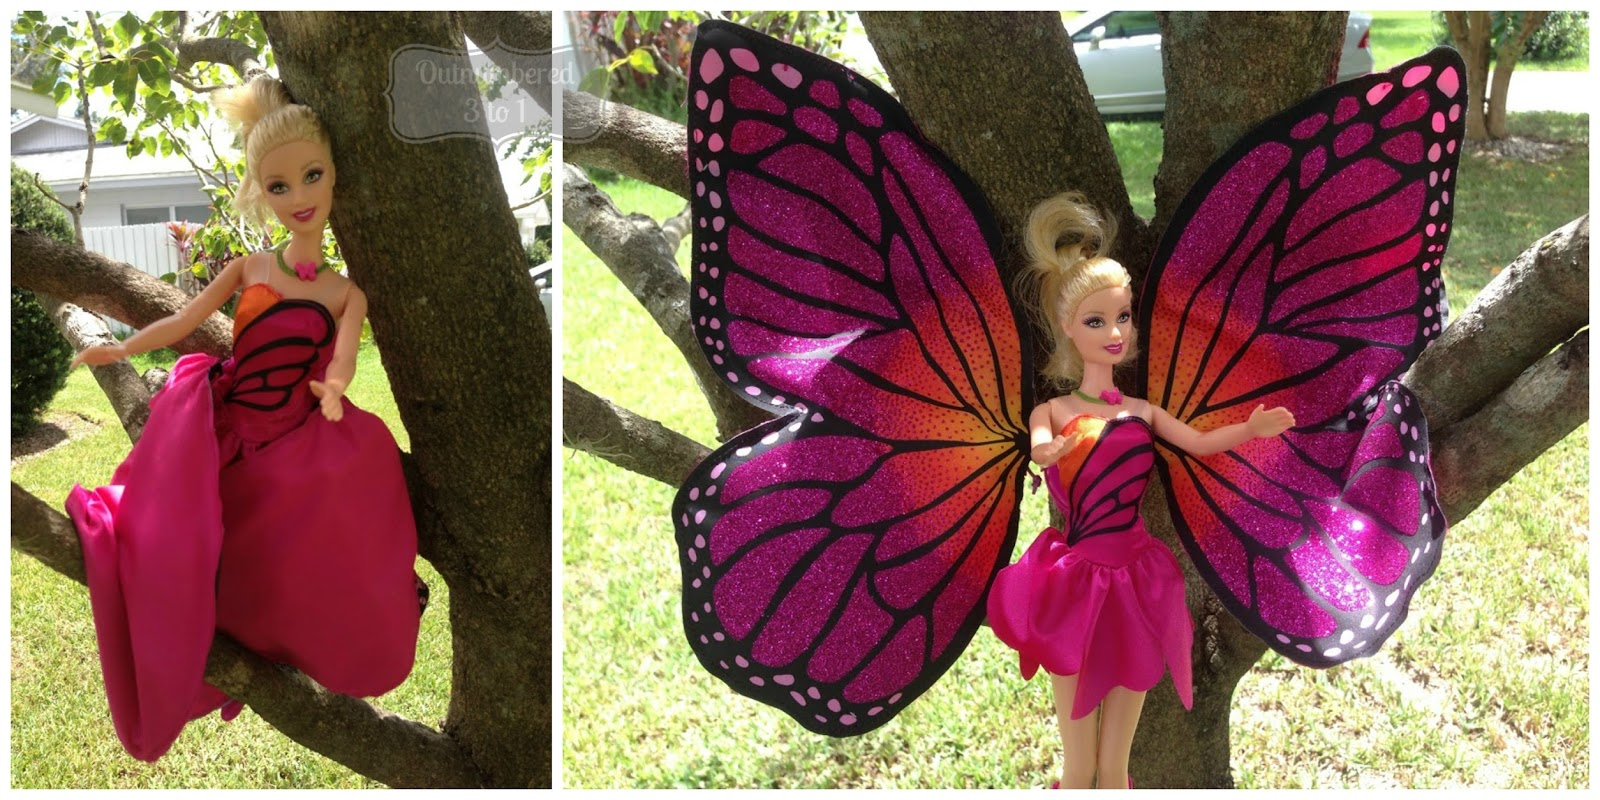 Barbie Mariposa and The Fairy Princess DVD Viewing Party